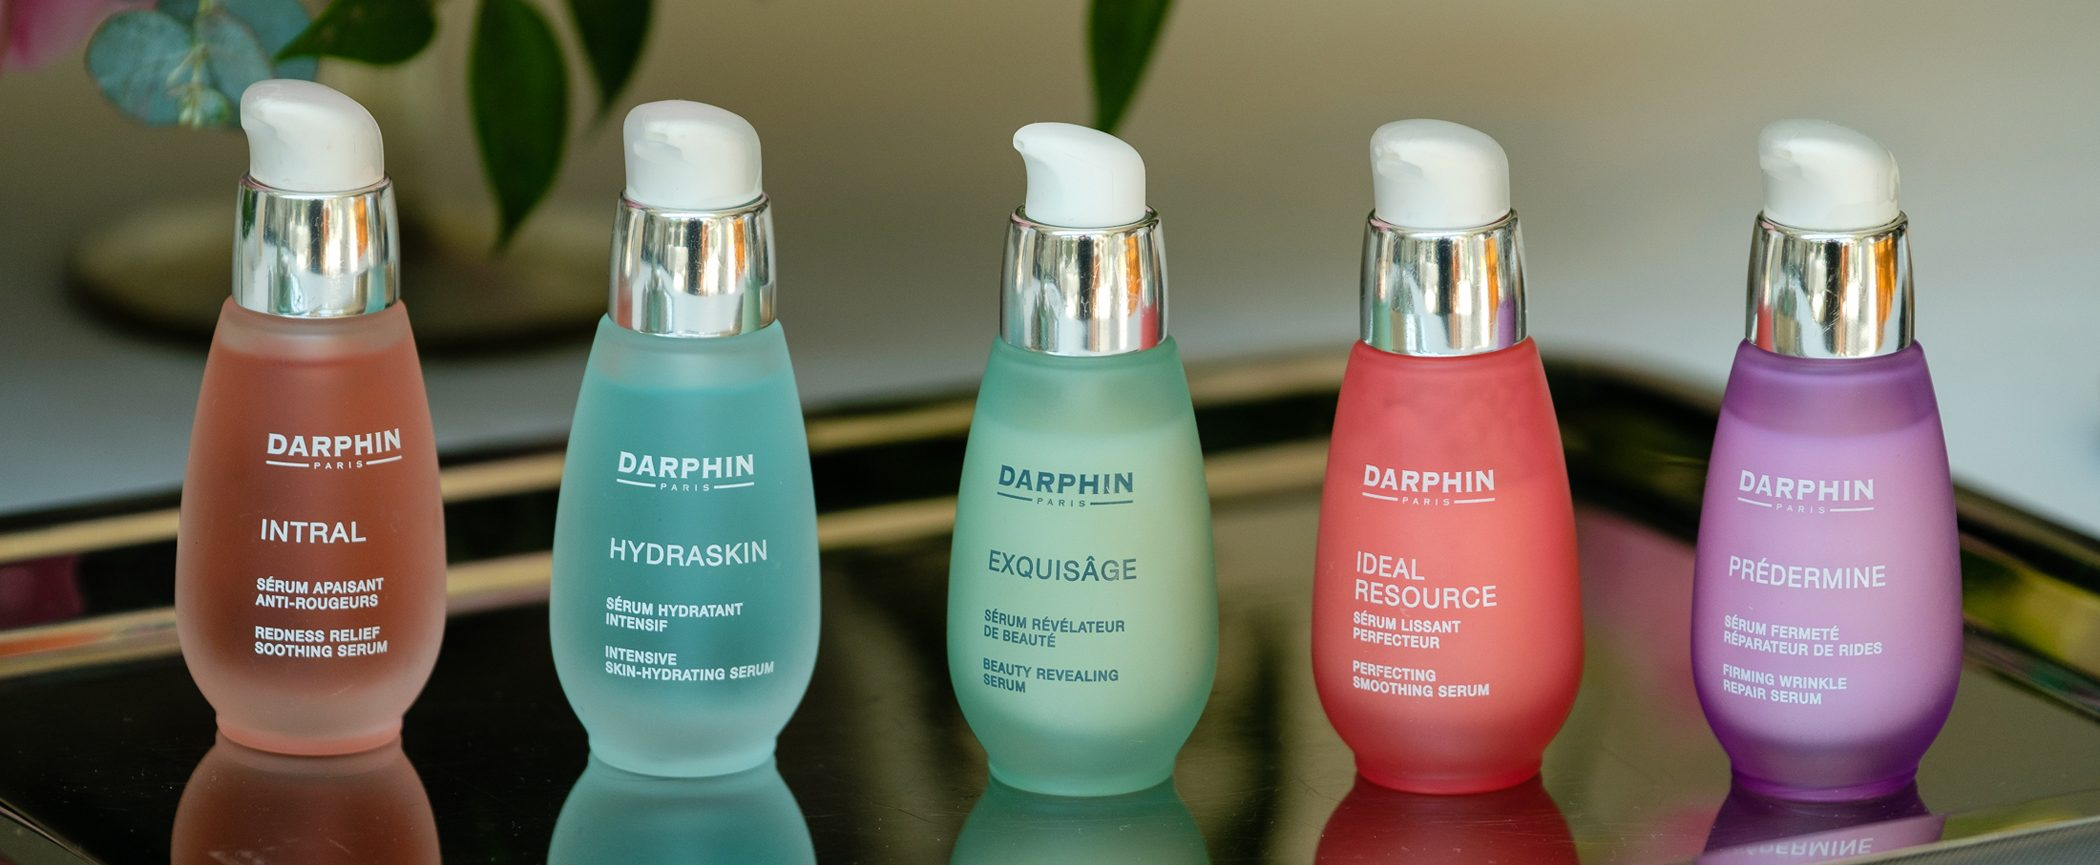 THE DARPHIN BEAUTY CARE PRODUCTS HAVE ARRIVED IN ROMANIA